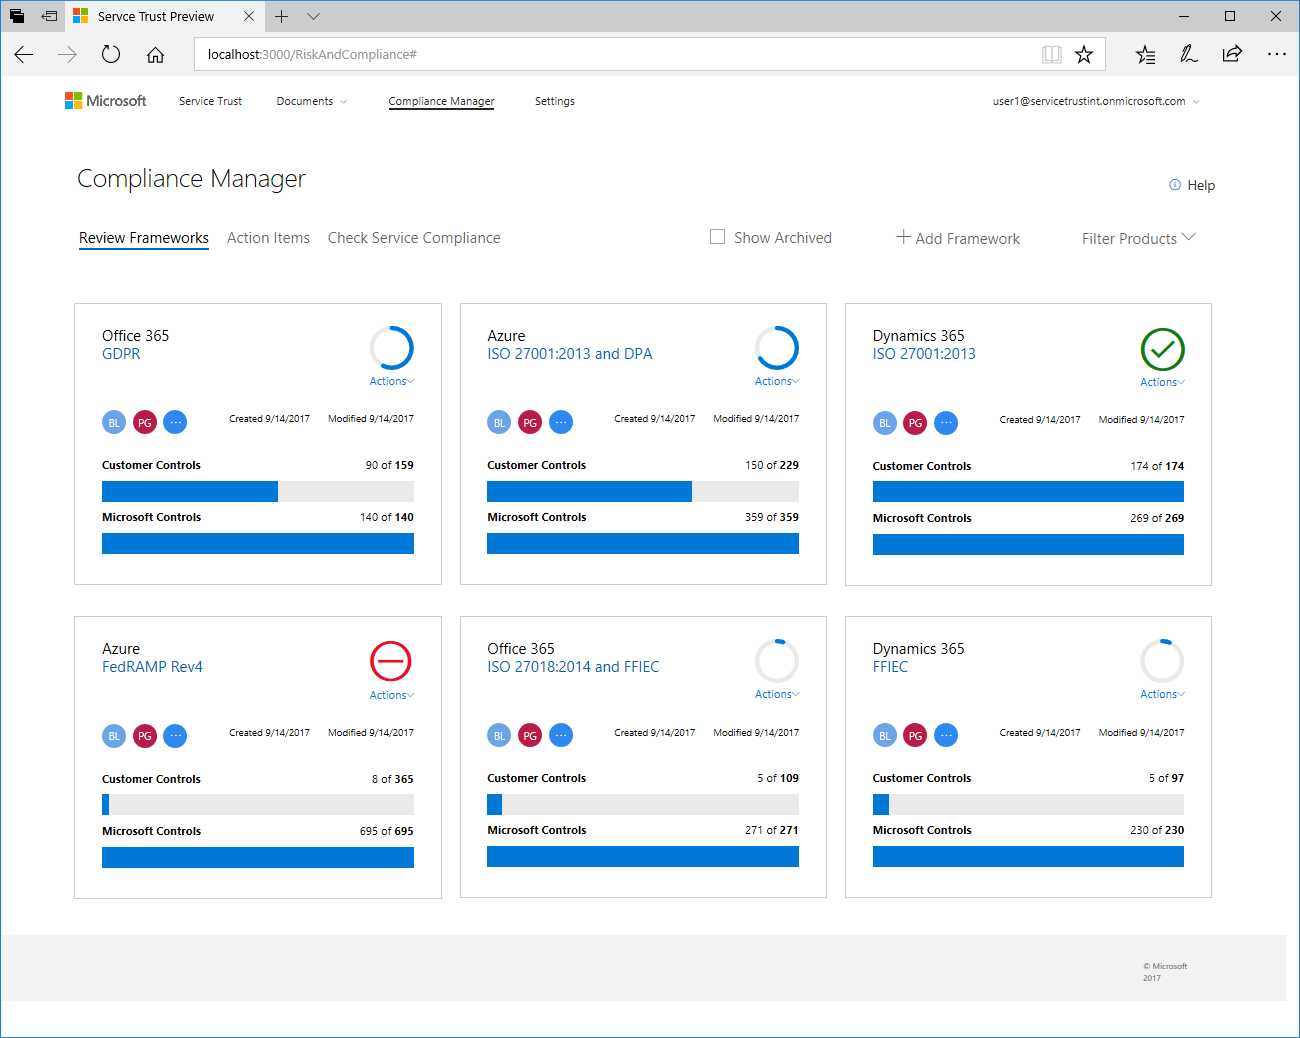 Bringing Deeper Integration And New Capabilities To Office